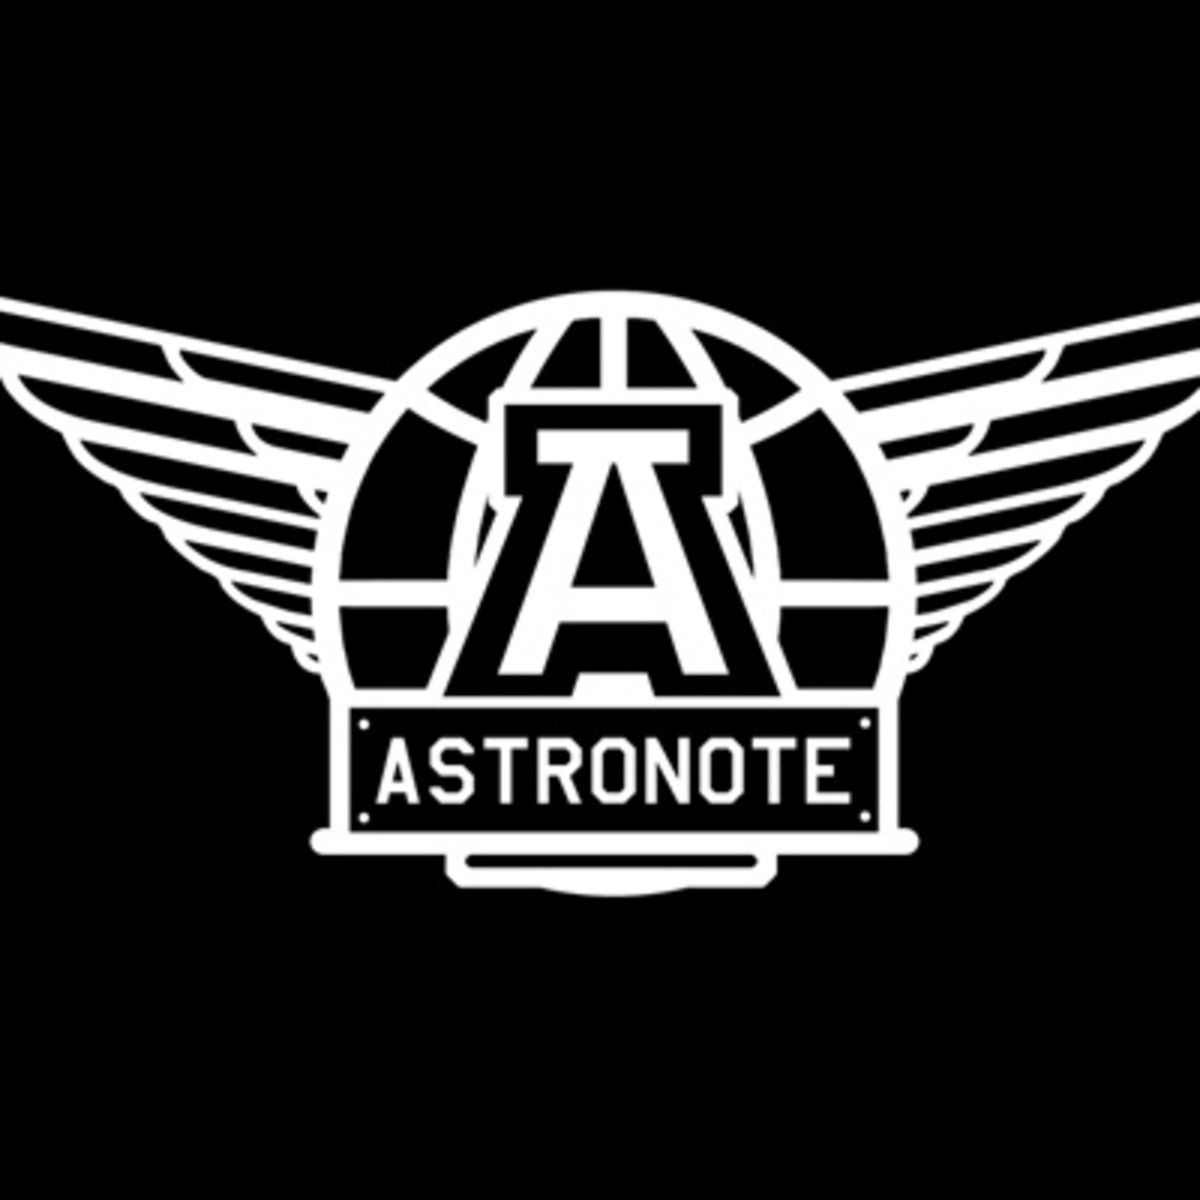 astronote.jpg